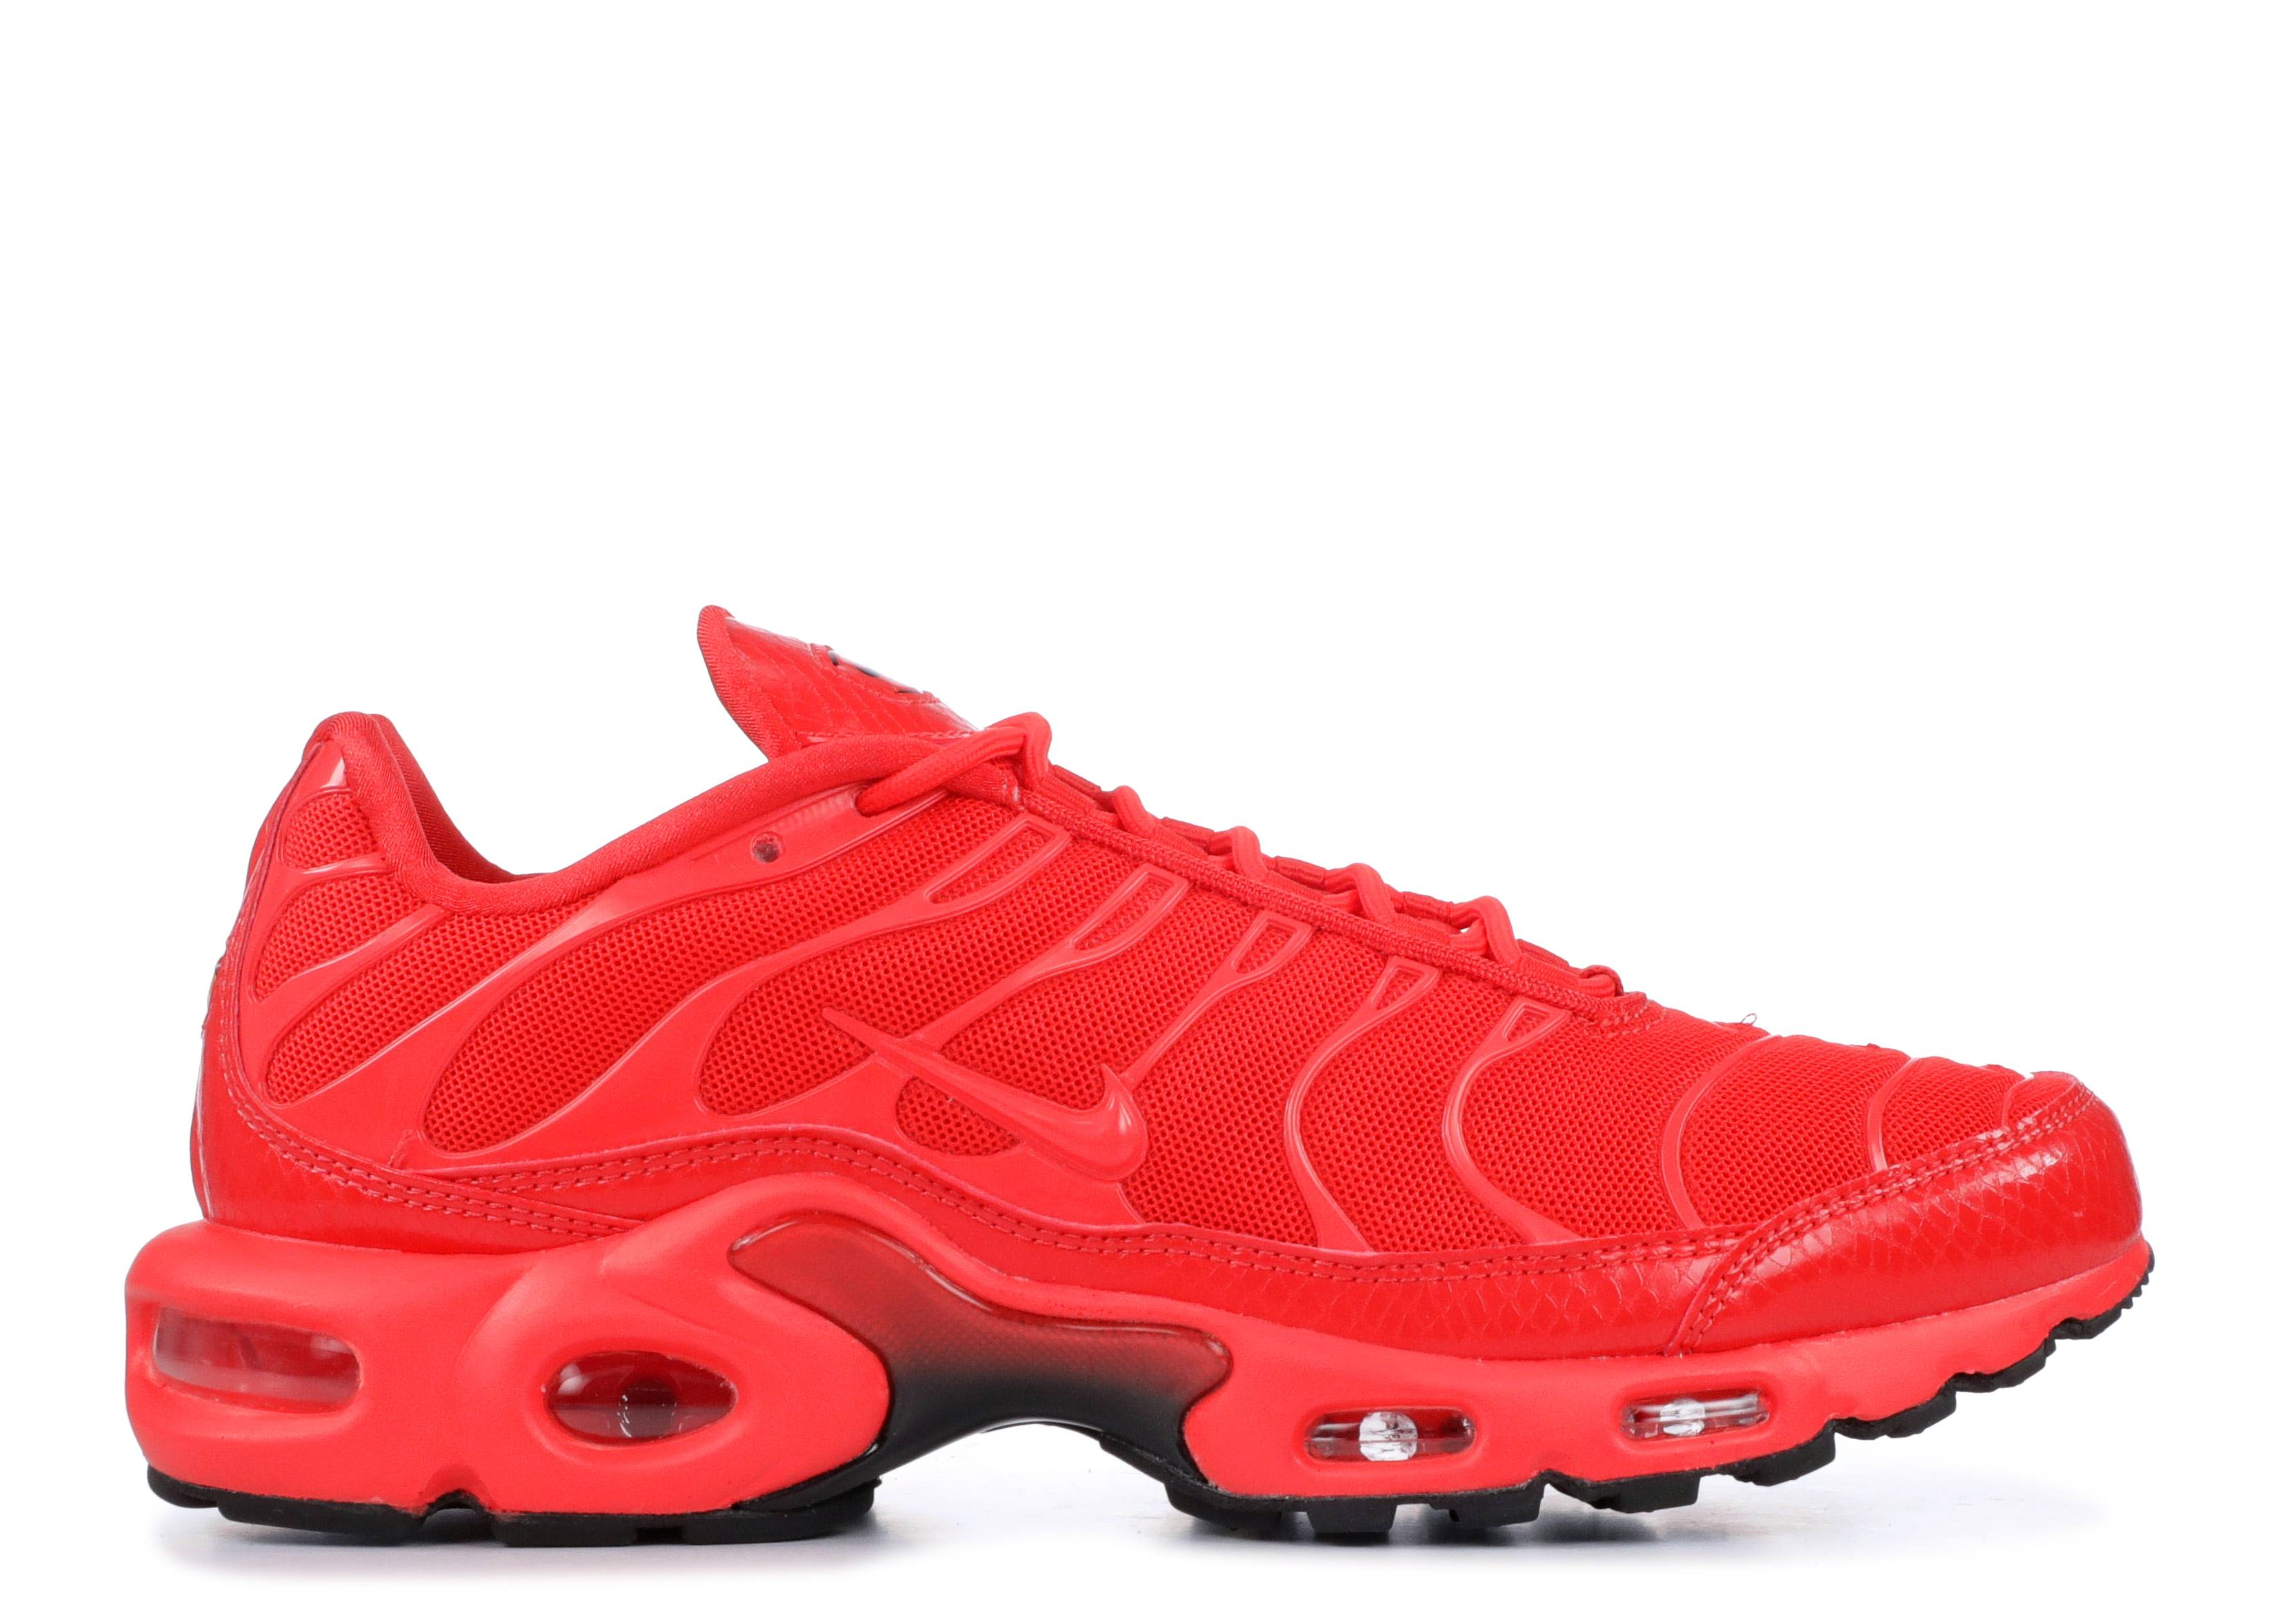 a5e502cca0 Wmns Air Max Plus - Nike - av8424 600 - light crimson/black-white ...